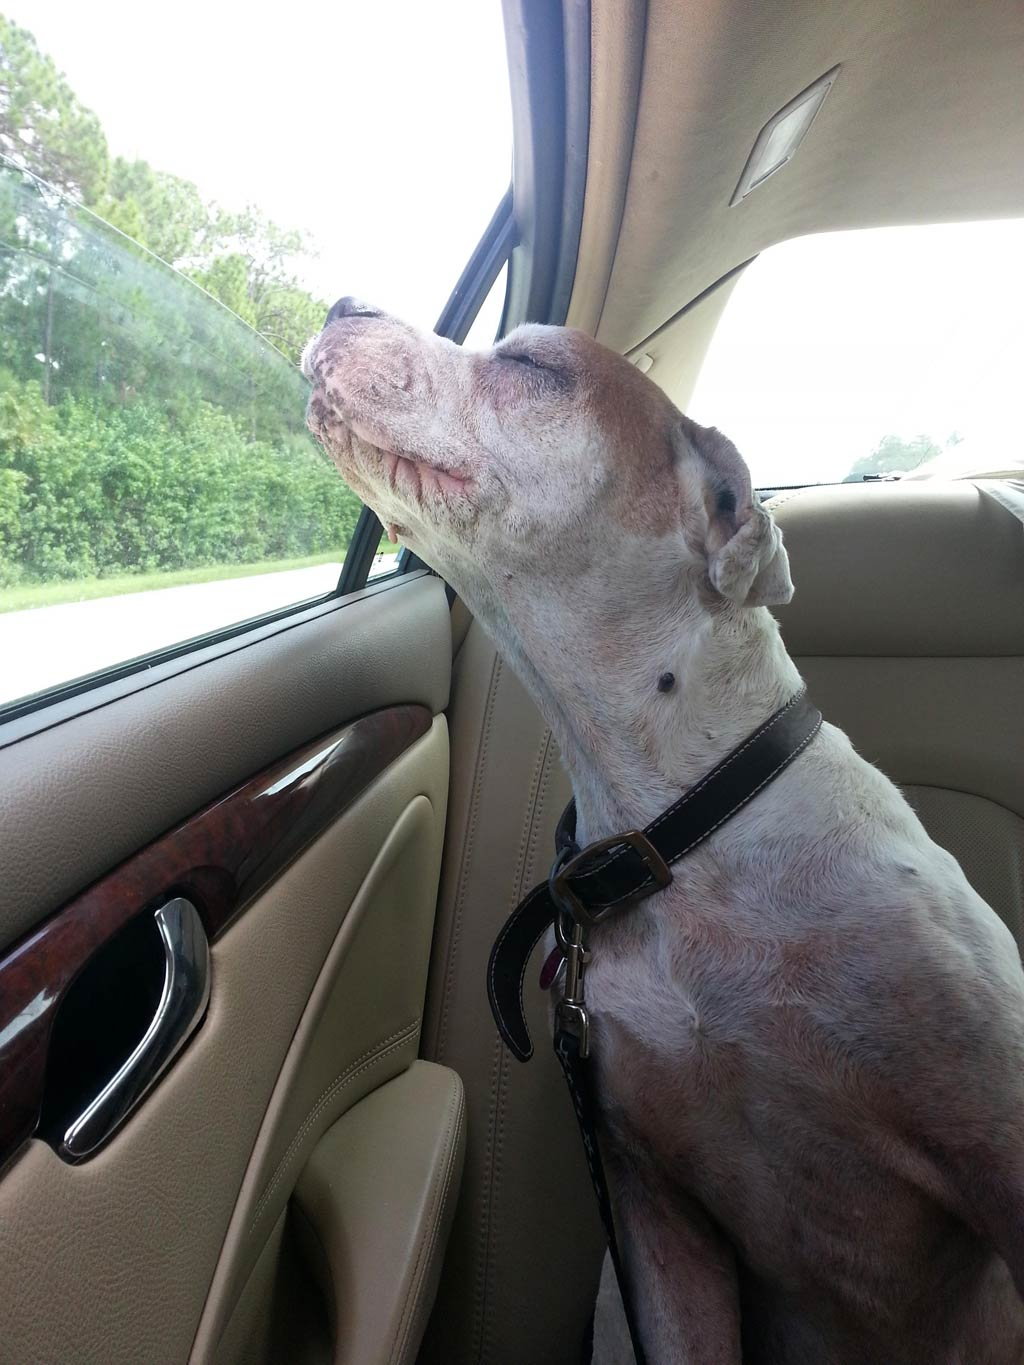 Elderly dog's 'last ride' captured in heart-wrenching photo